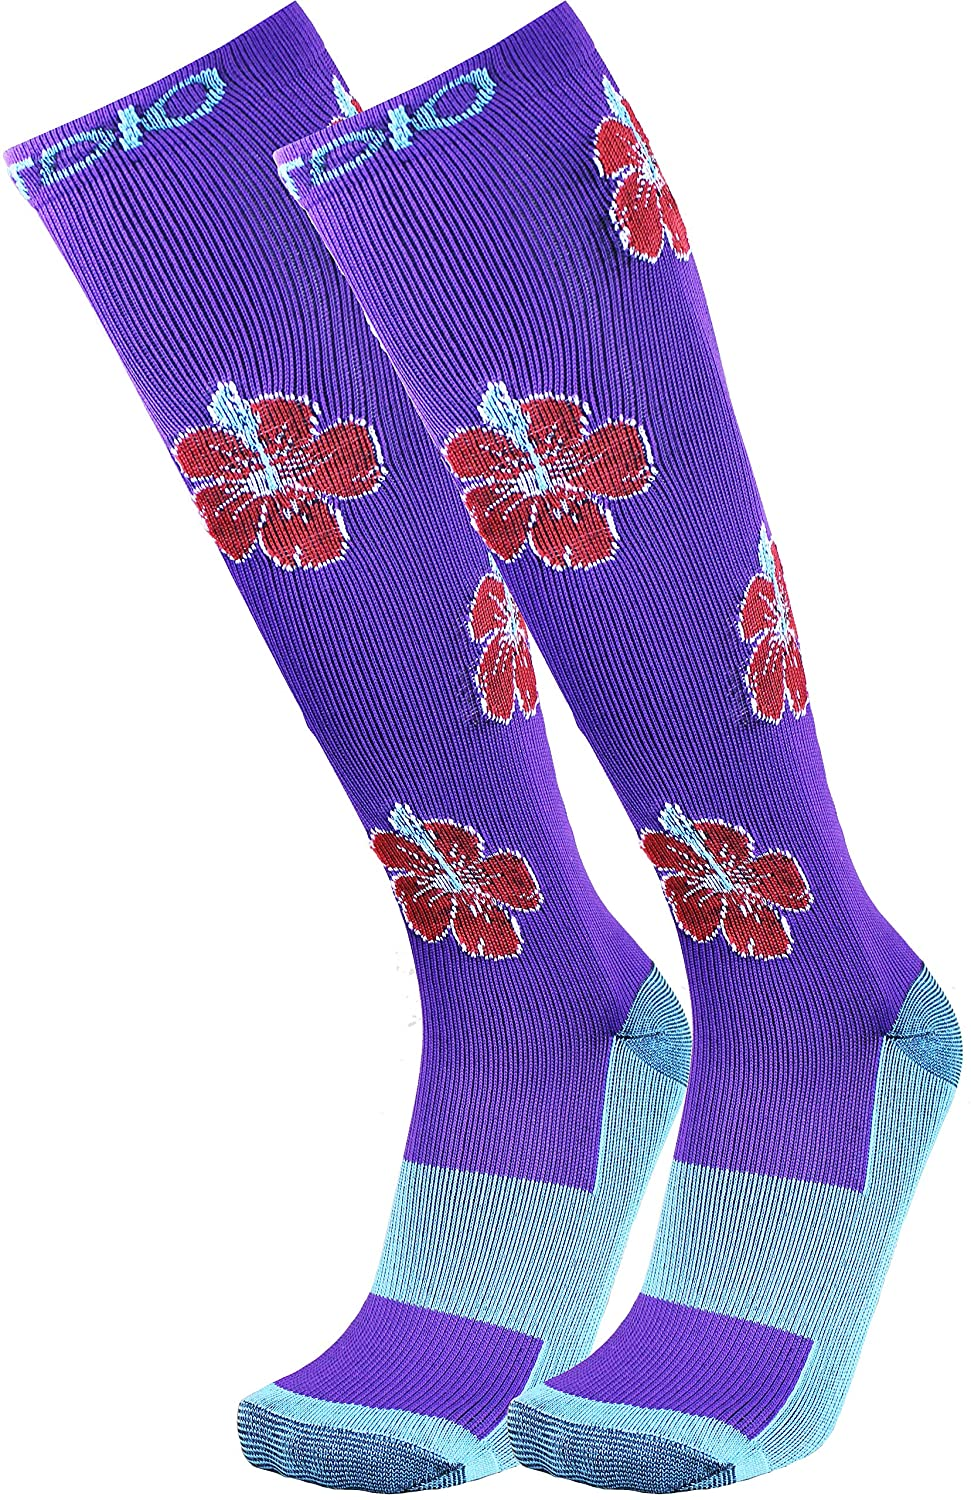 Vivid Orchid Graduated 15-20mmHG Knee High Compression Socks For Men & Women, Purple